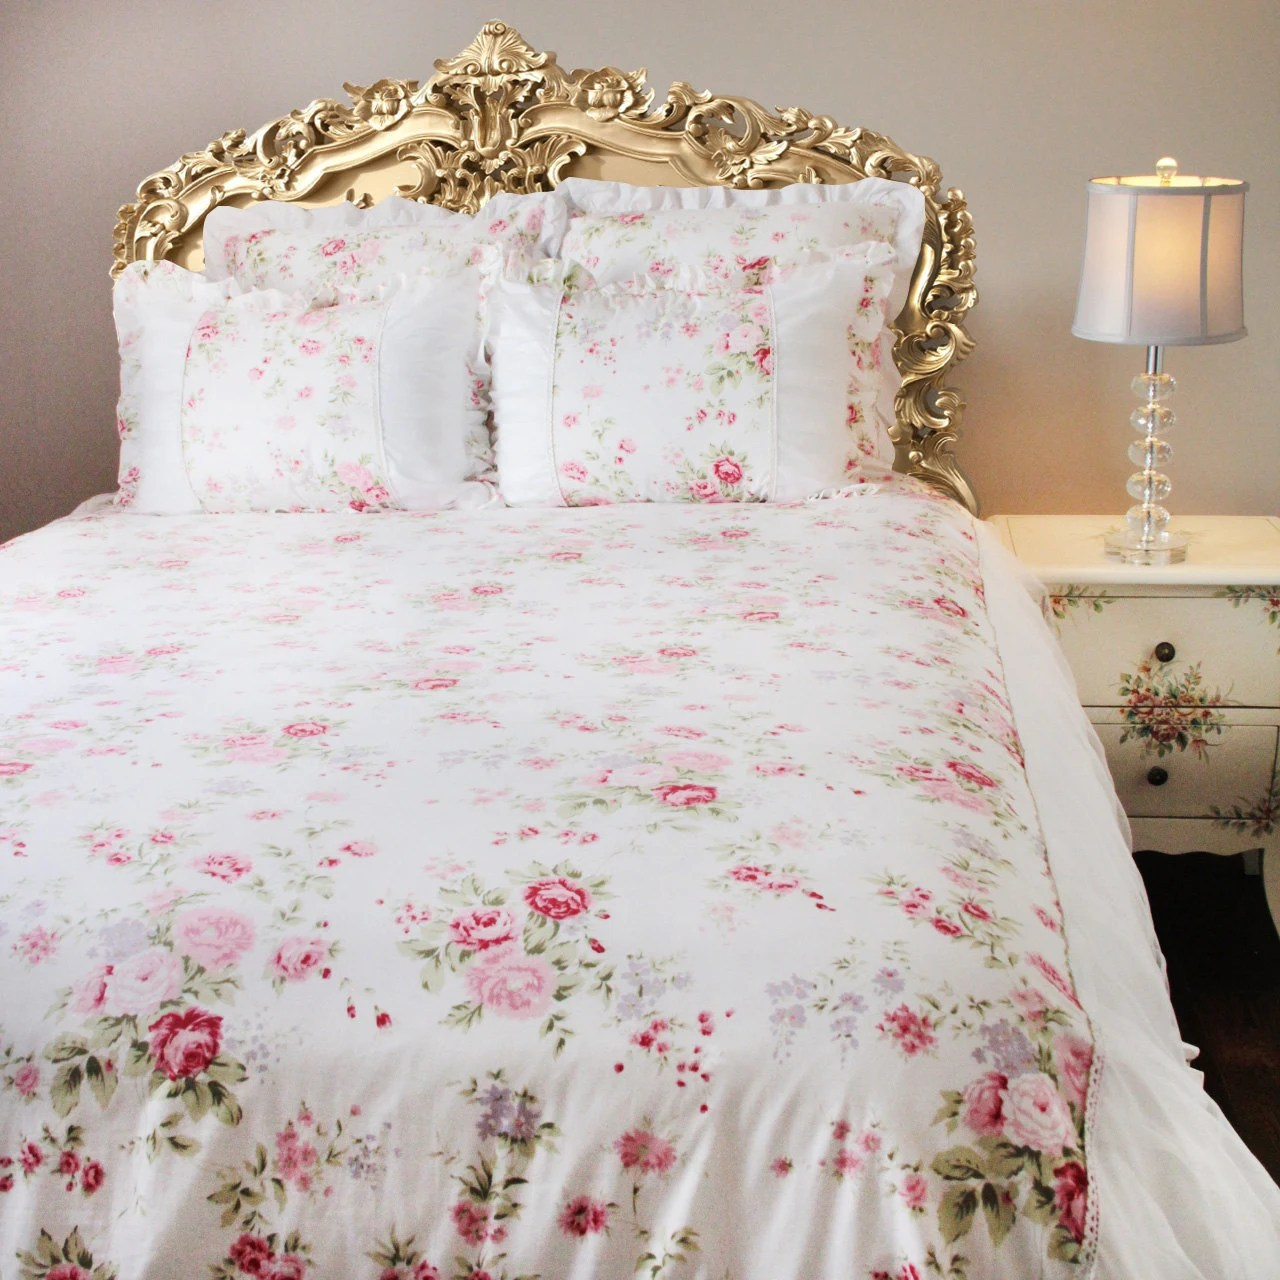 Bettwäsche Mia And Me White Pink Rose Ruffle Cotton Luxury Shabby Victorian Cottage French Country Cotton Ruching Duvet Cover